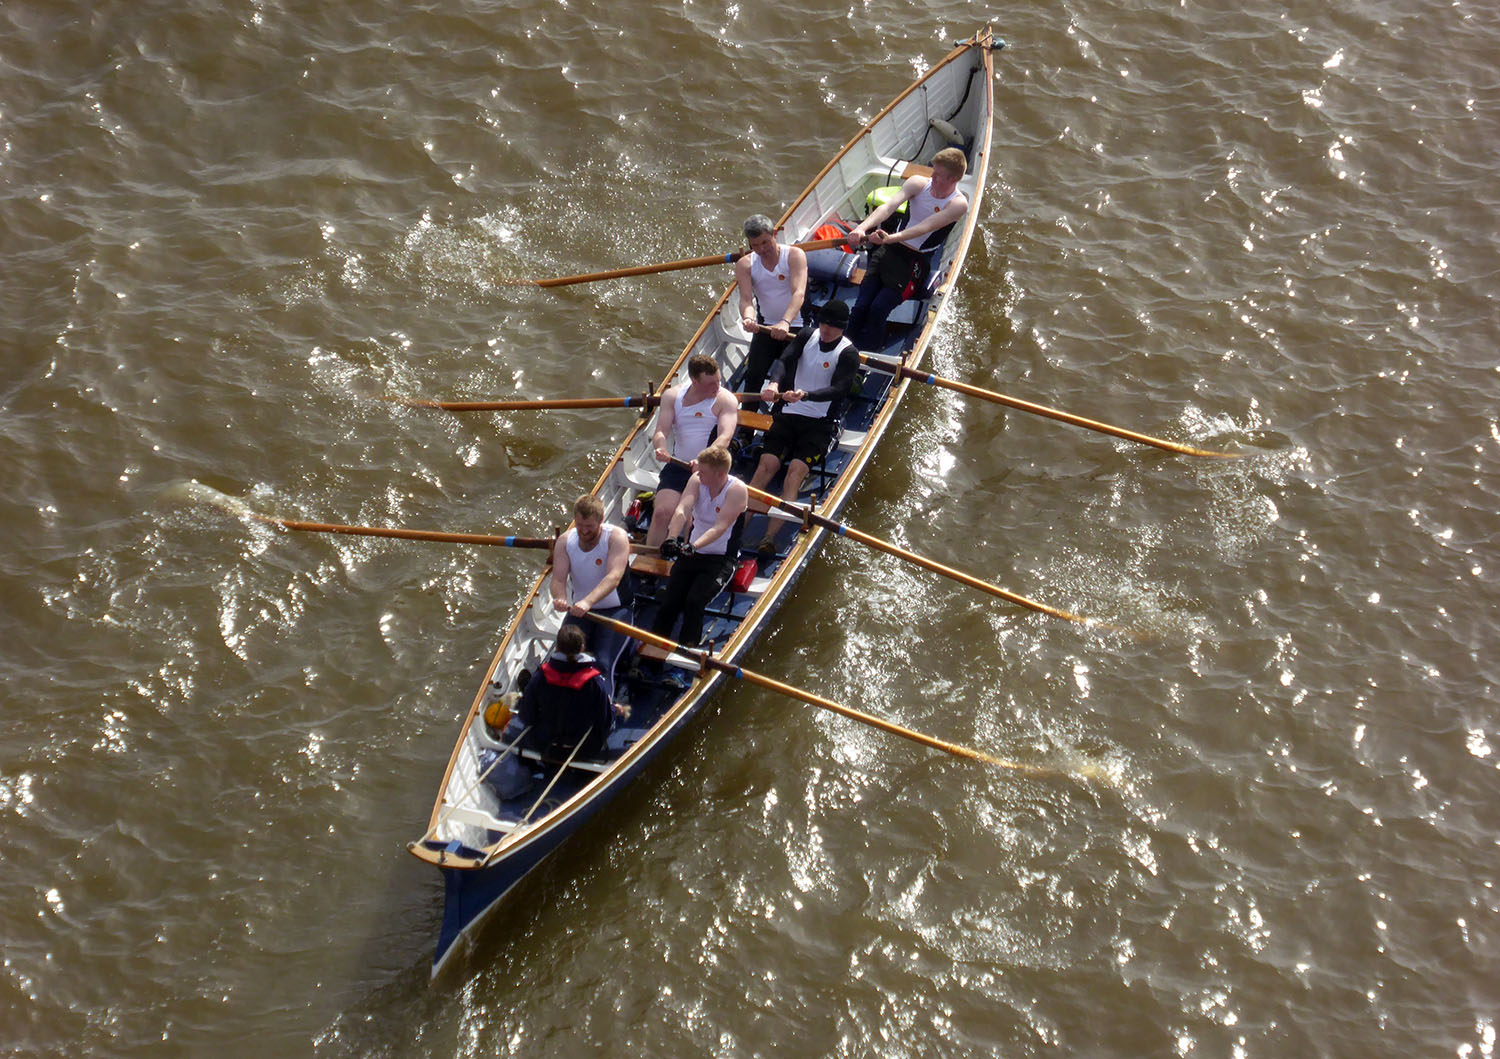 BRNC take part in first gig race of season